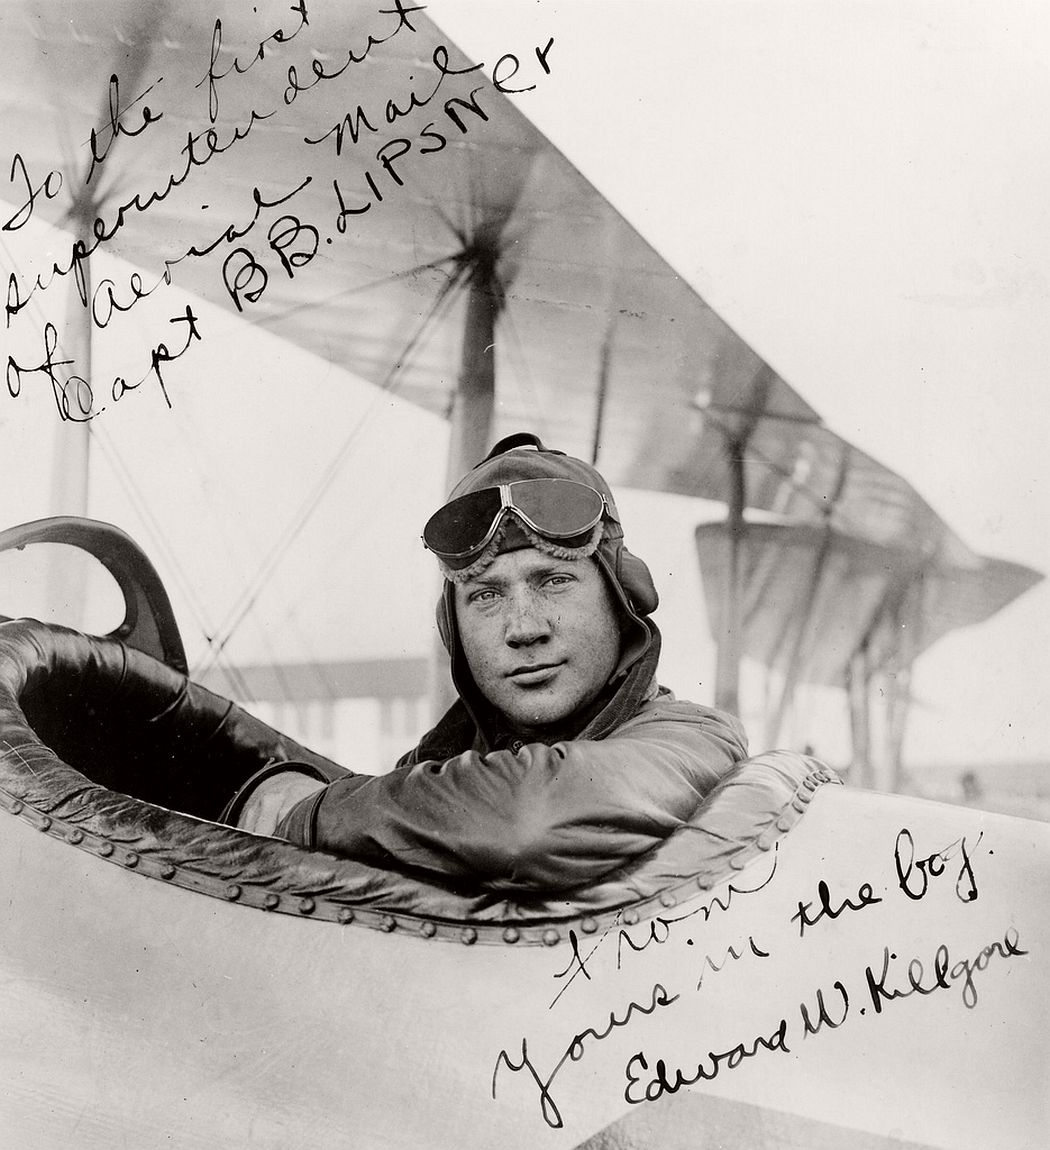 Airmail pilot Edward Killgore, 1918